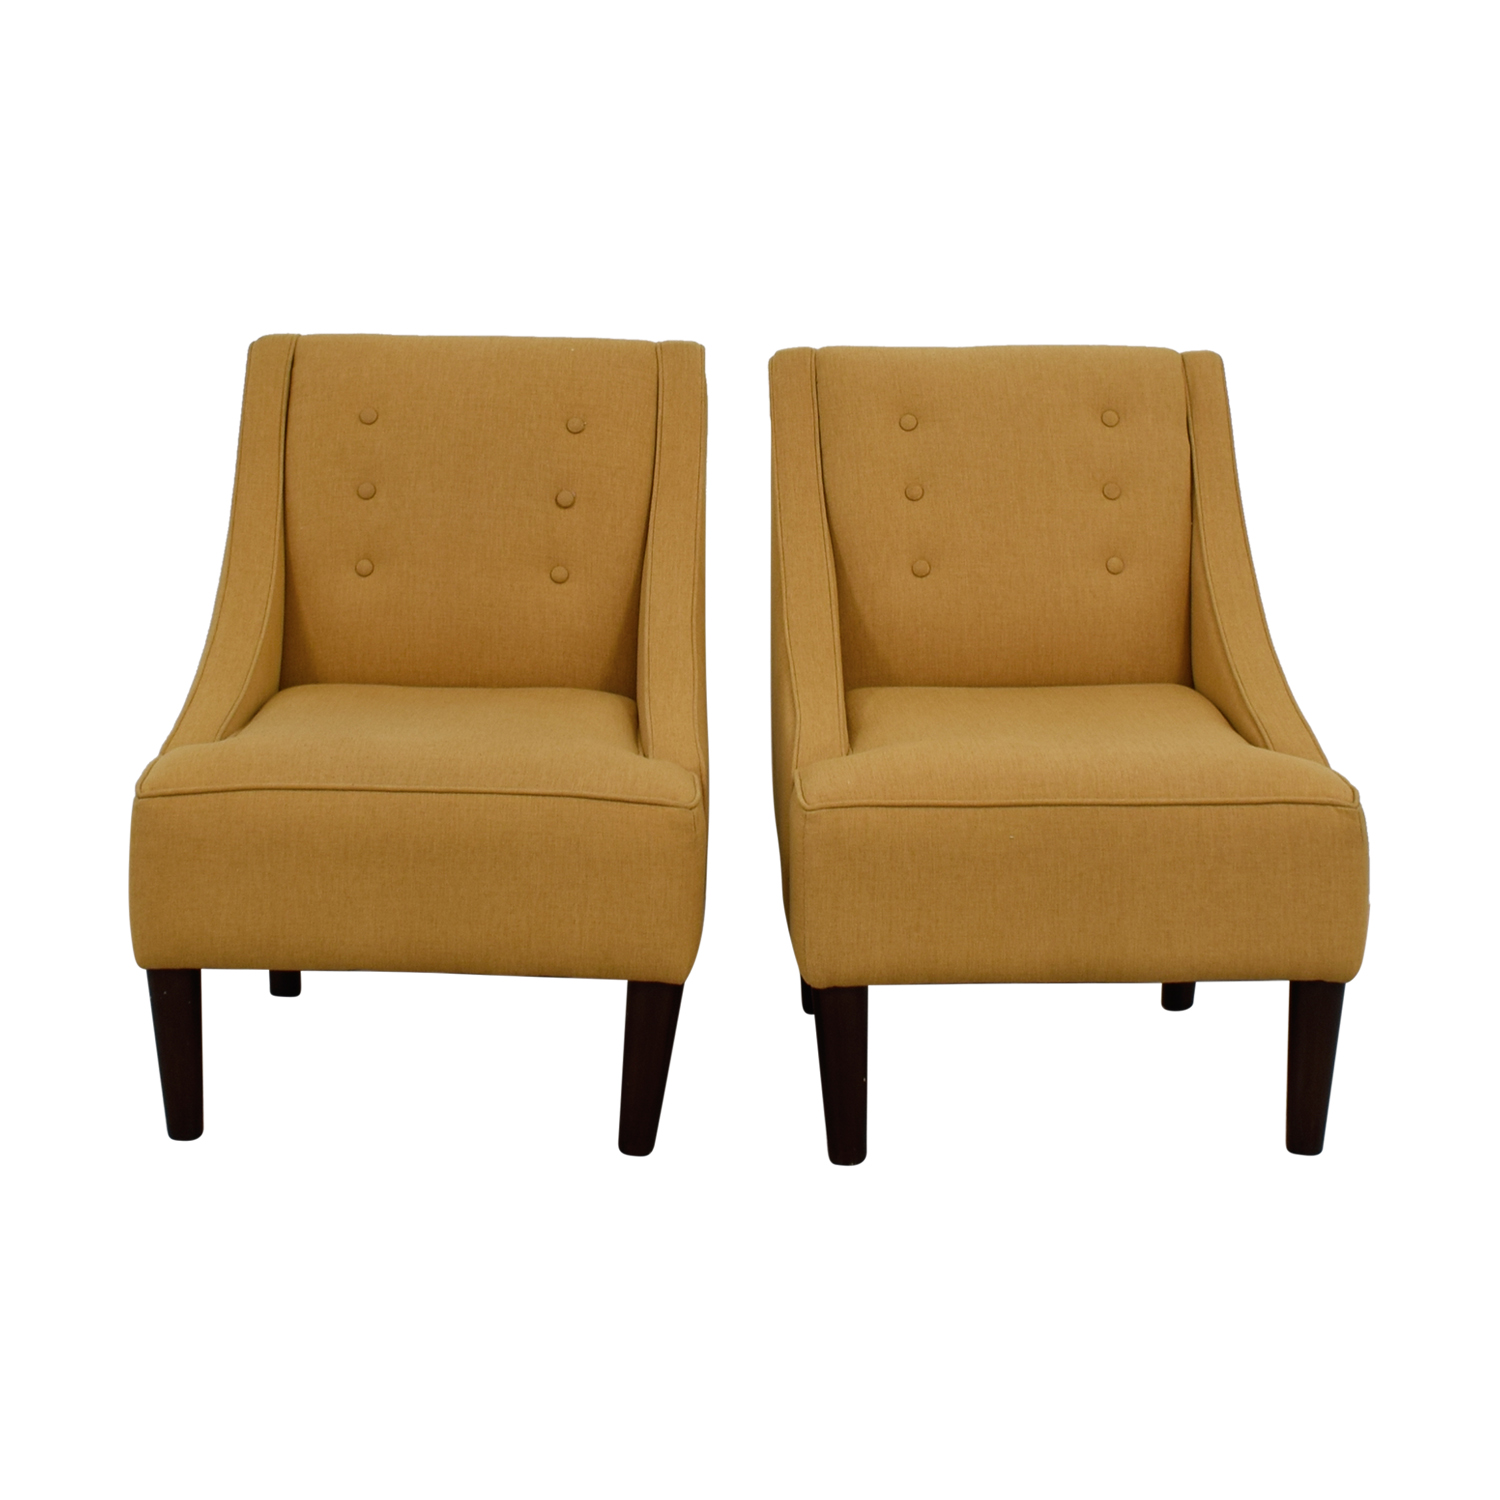 buy Thomas Paul Thomas Paul Mustard Tufted Accent Chairs online